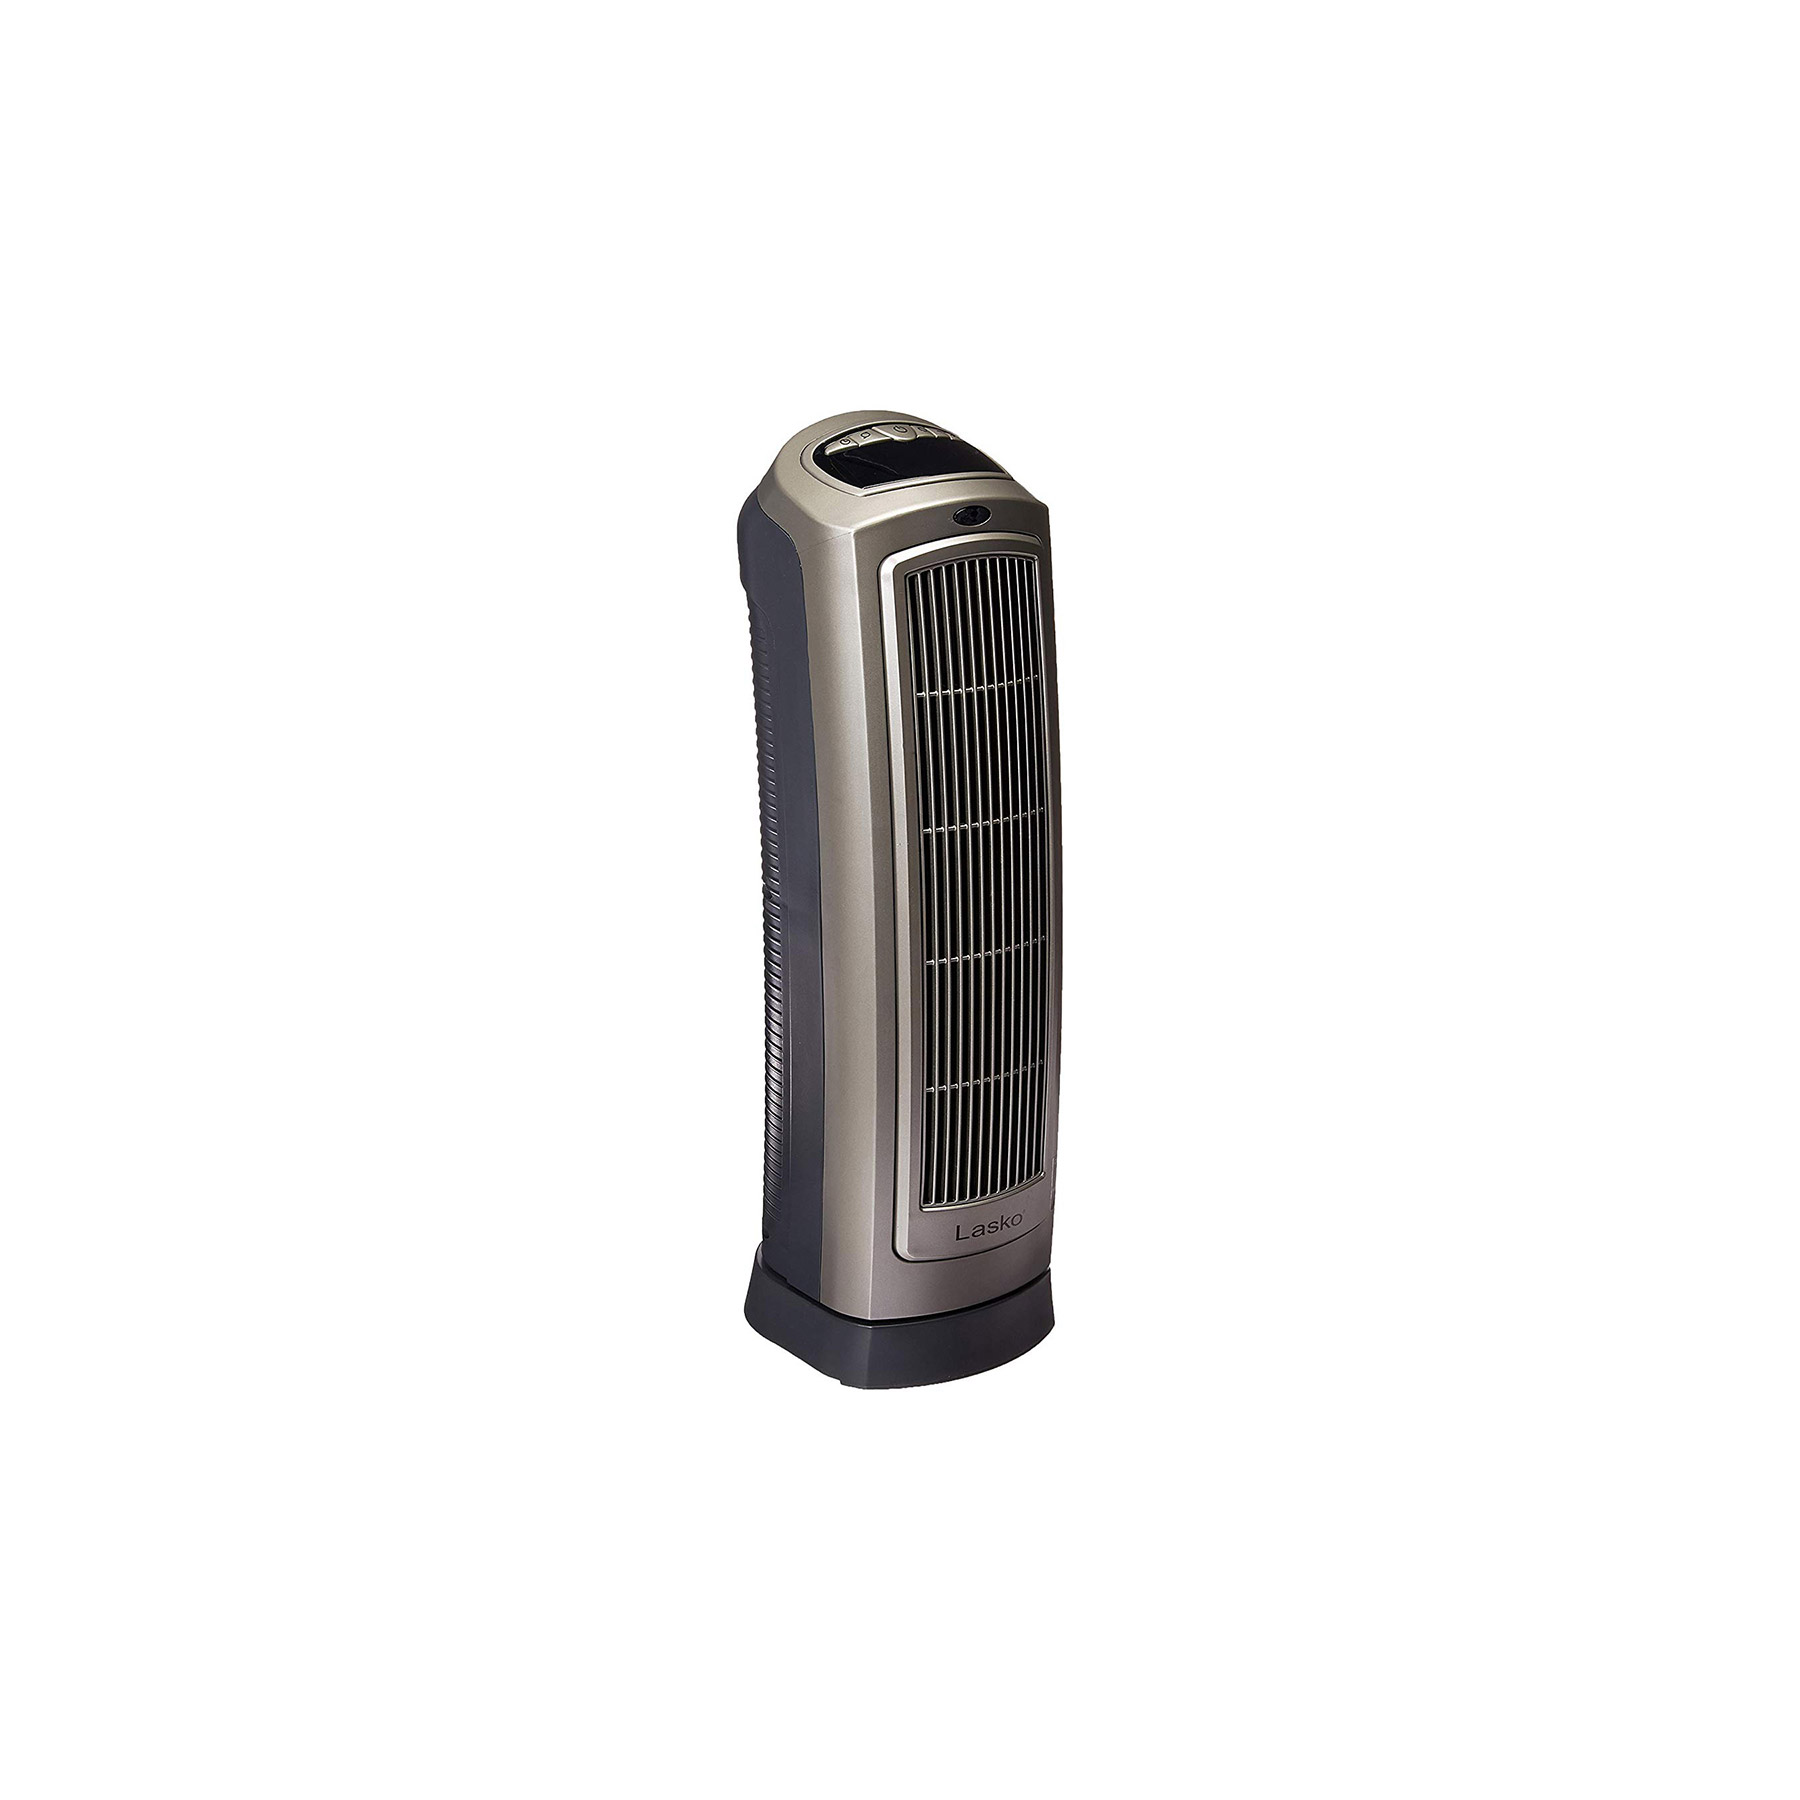 Lasko Heating Space Heater with Adjustable Thermostat